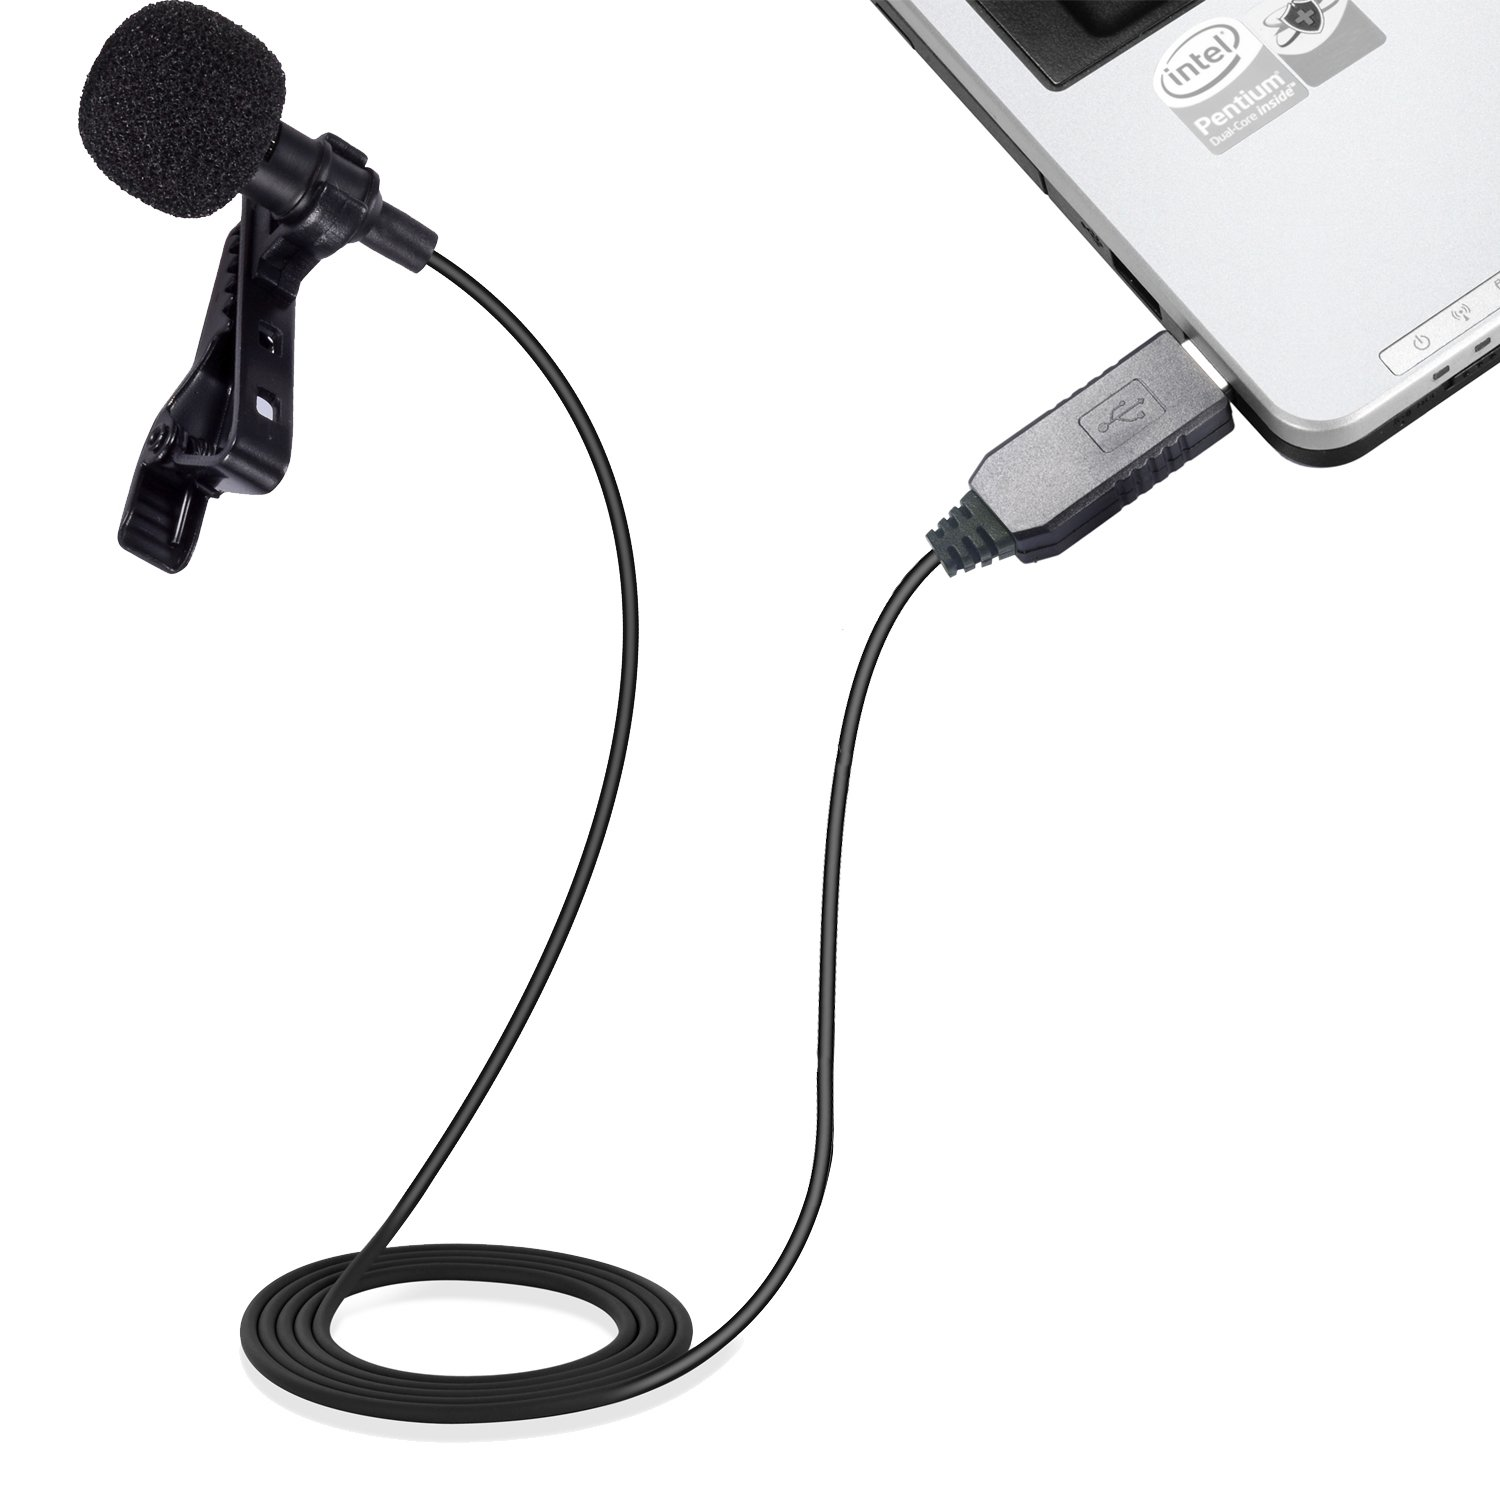 Mic for Computer, PChero USB Lavalier Clip-on Omnidirectional Condenser Microphone for Laptop PC Macbook, Perfect for Interviews, Skype, Audio Video Youtube Recording, QQ, MSN, Skypee, Podcast by PChero (Image #2)